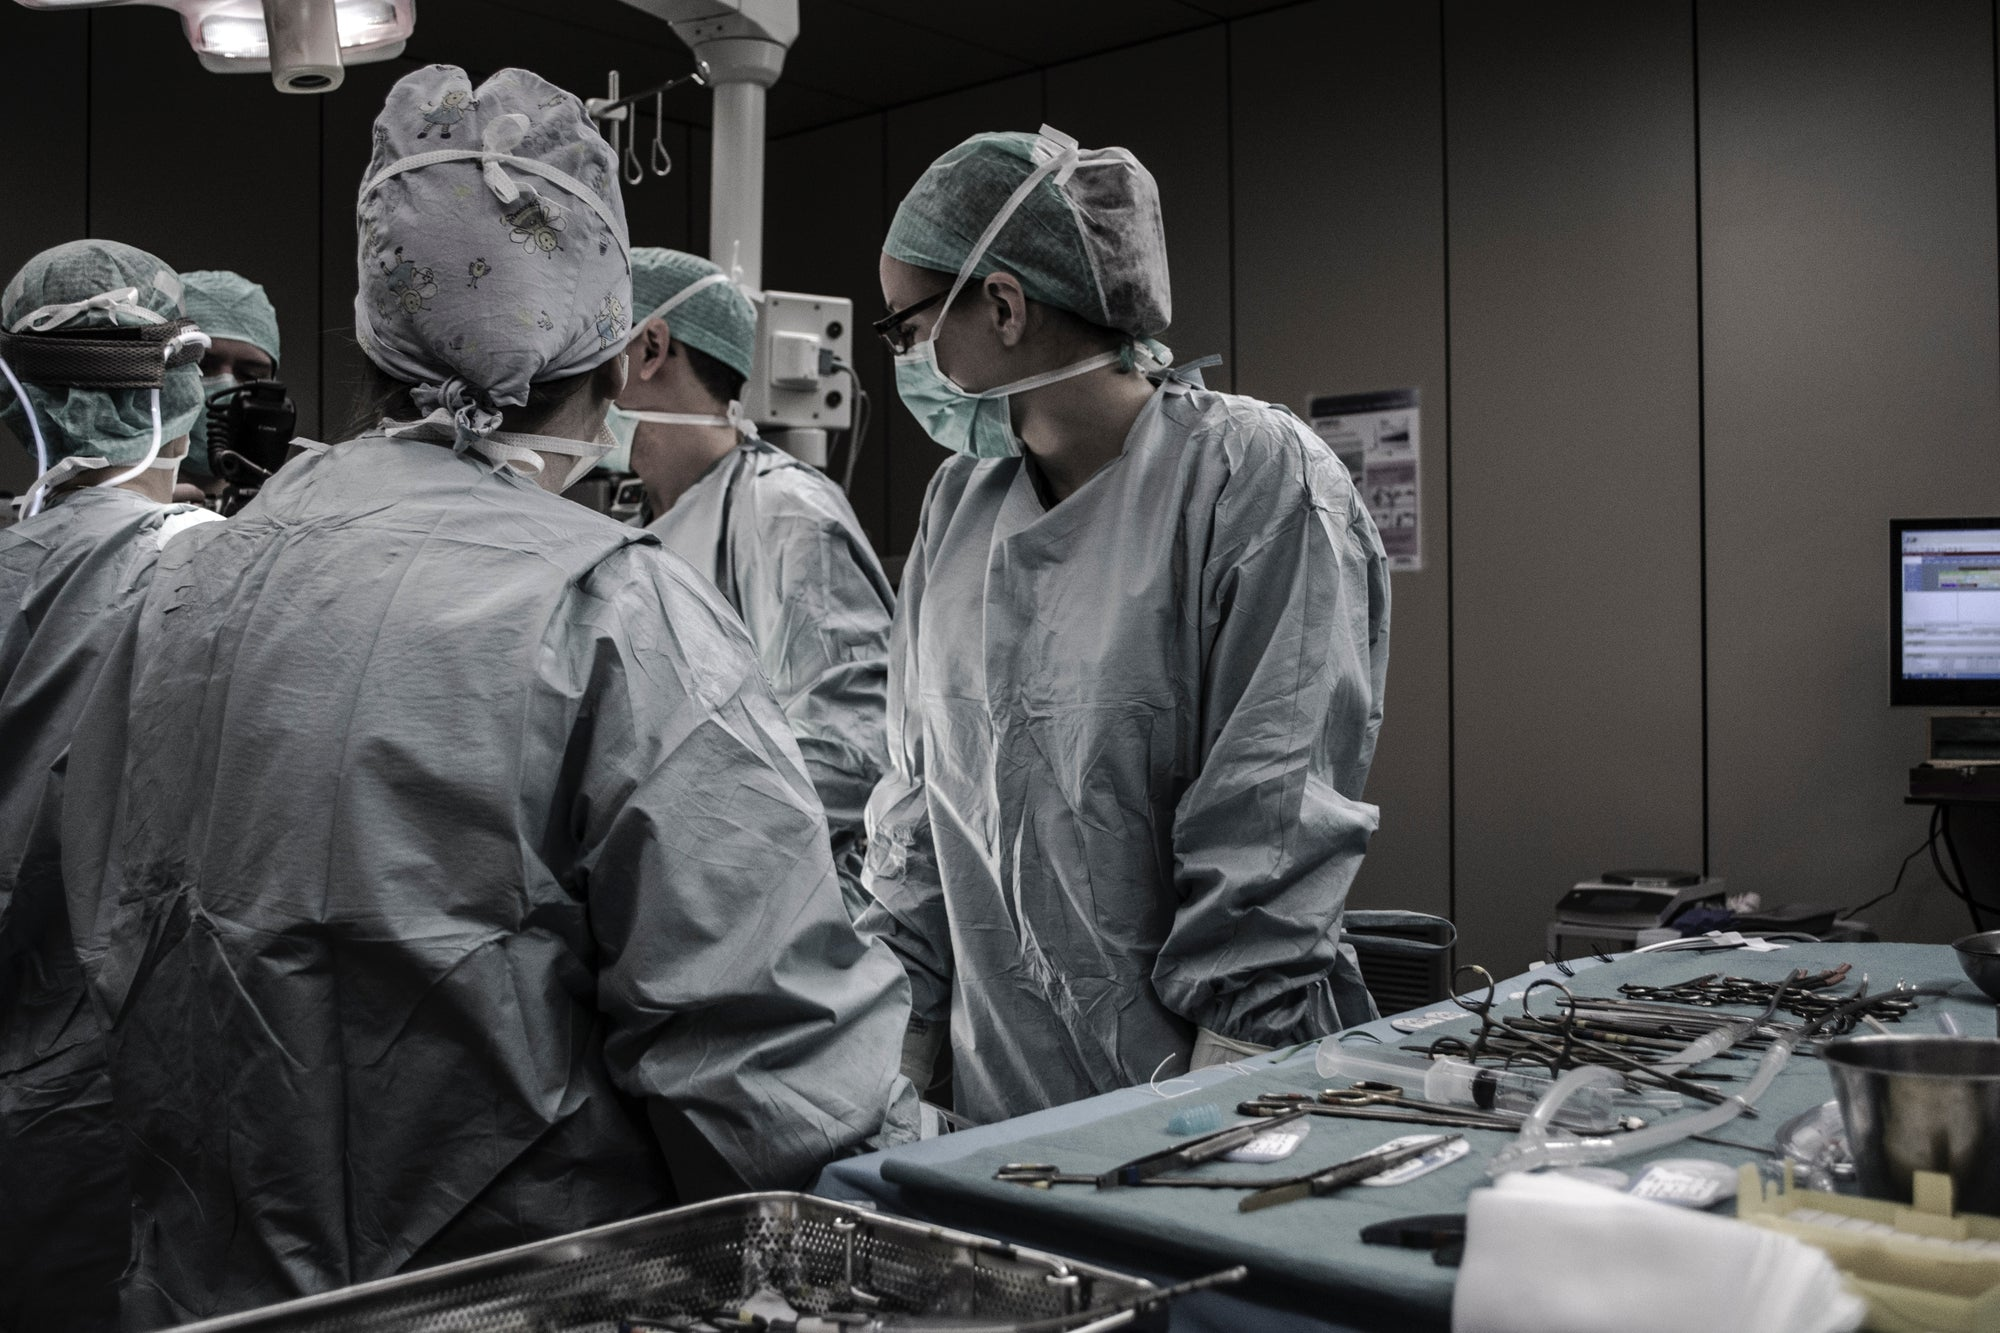 A team of medical professionals overseeing a surgery